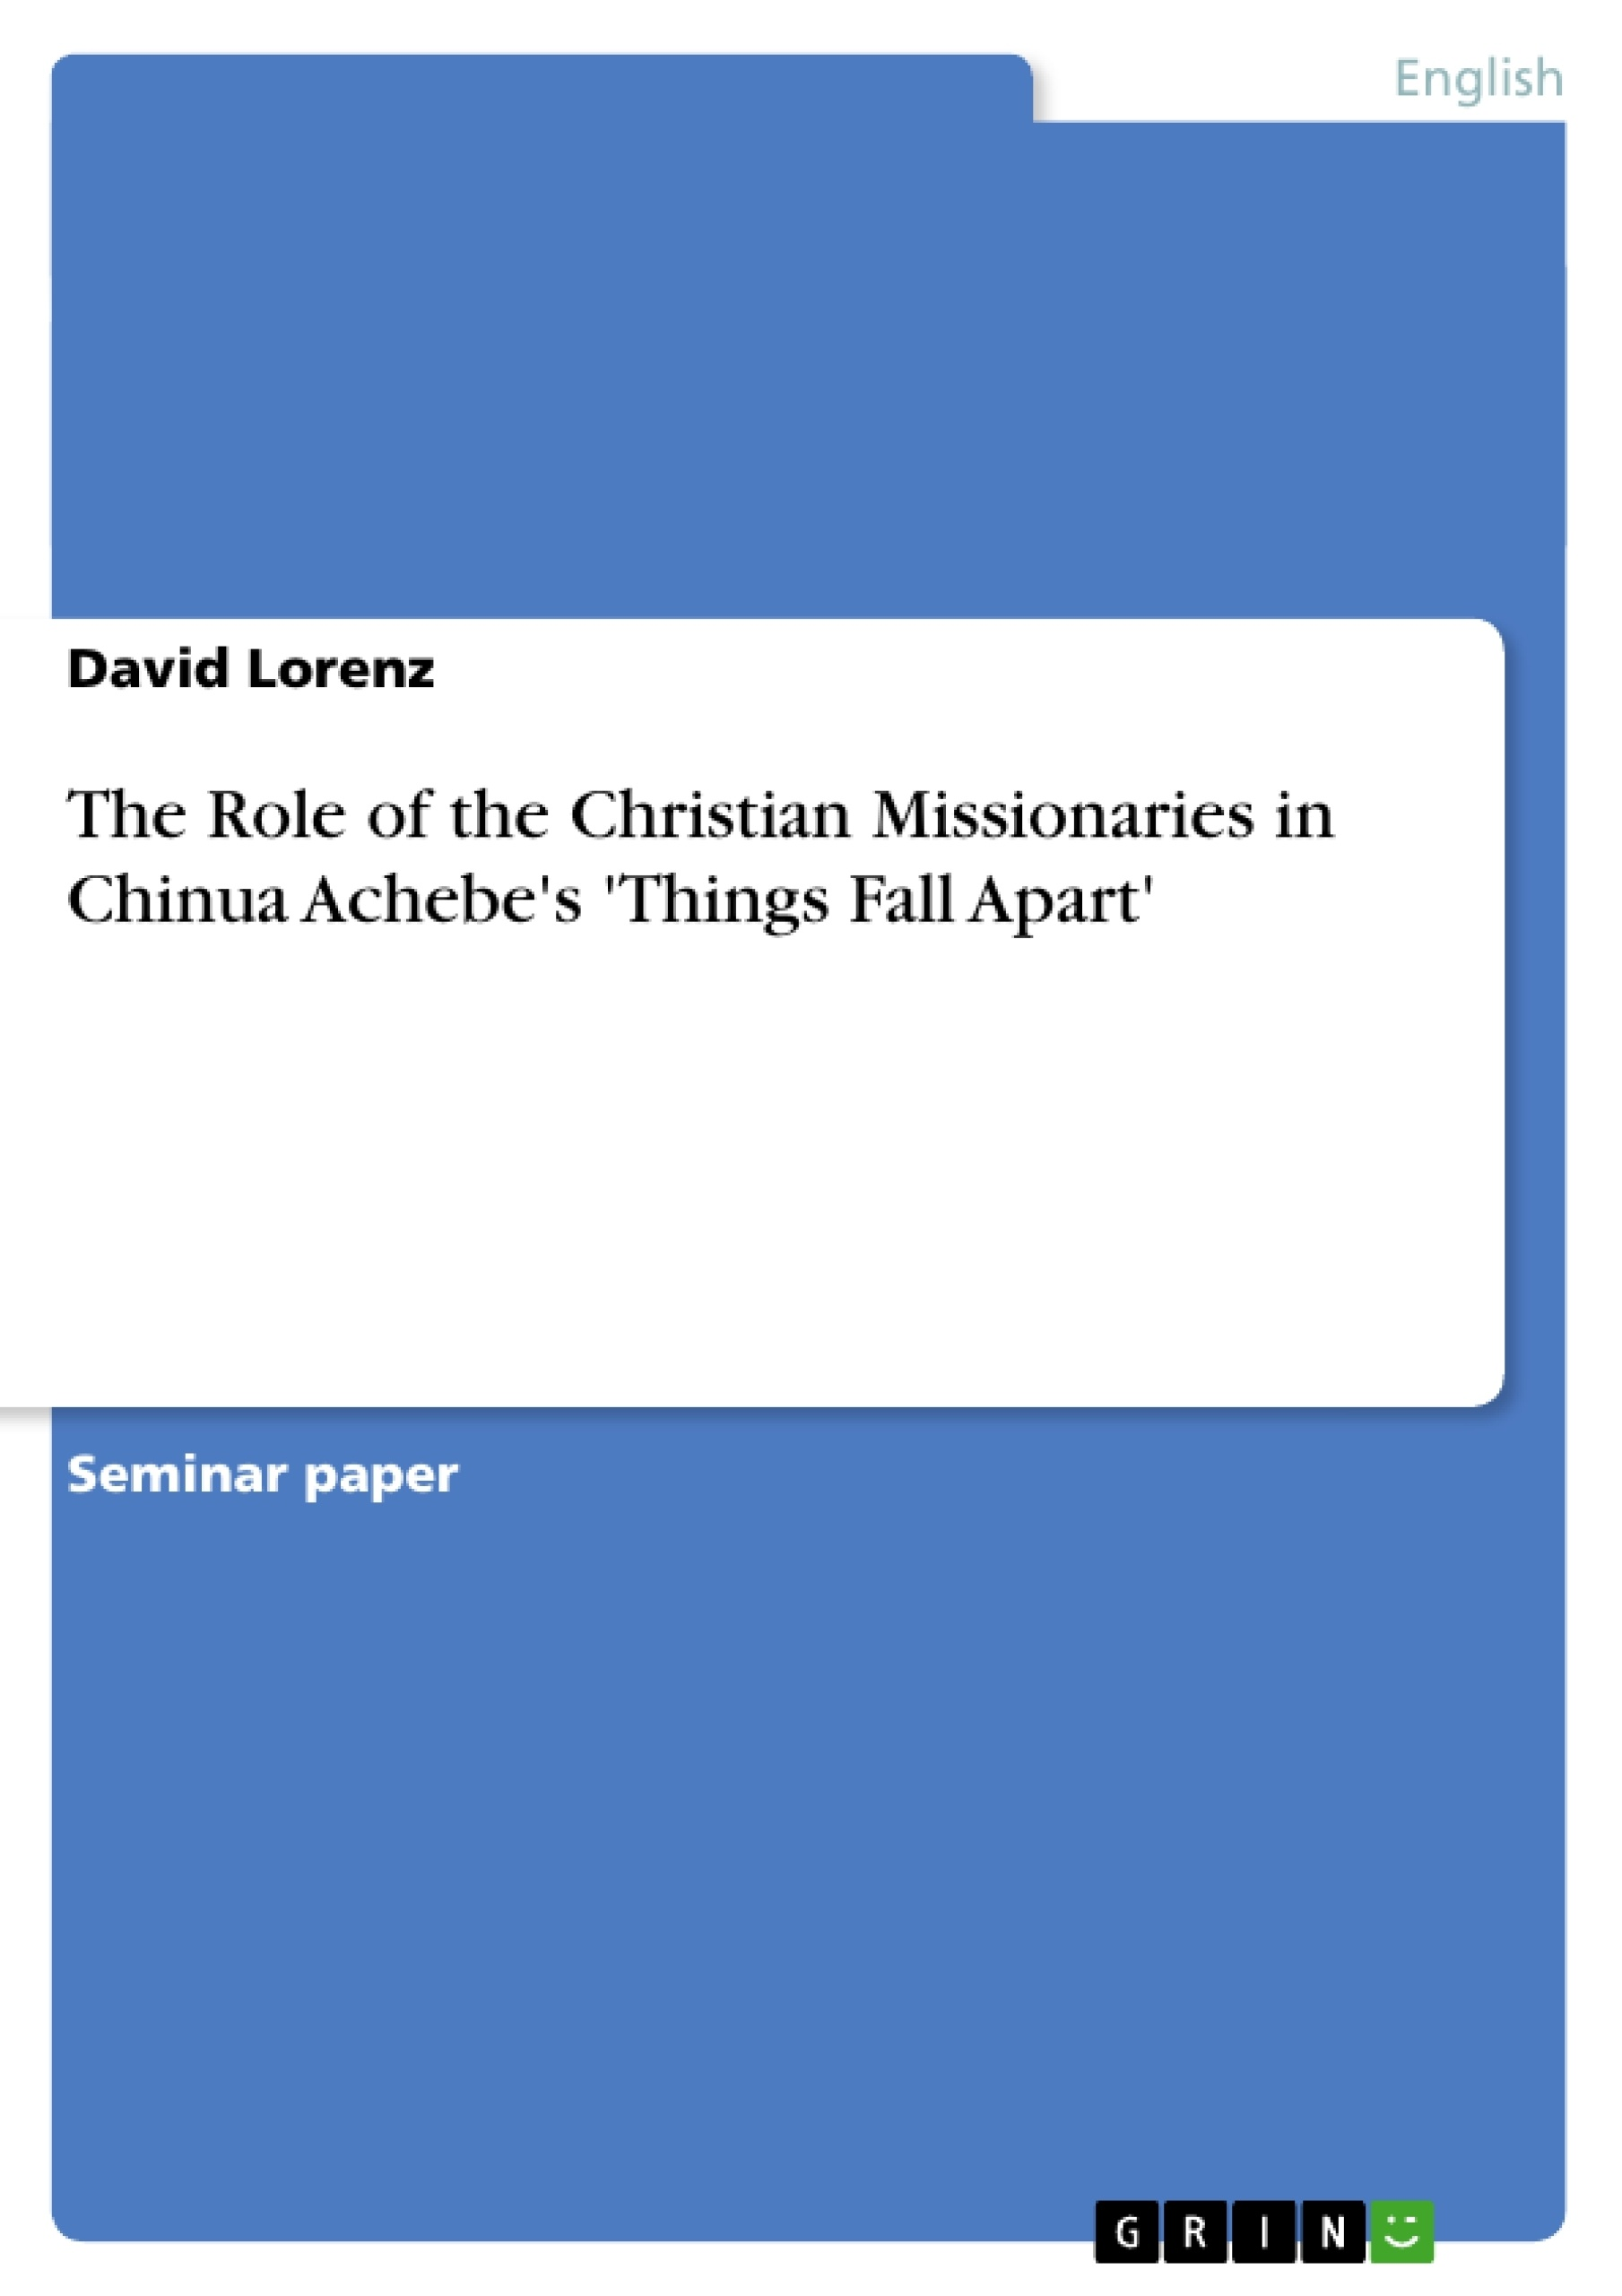 The Role Of The Christian Missionaries In Chinua Achebe's